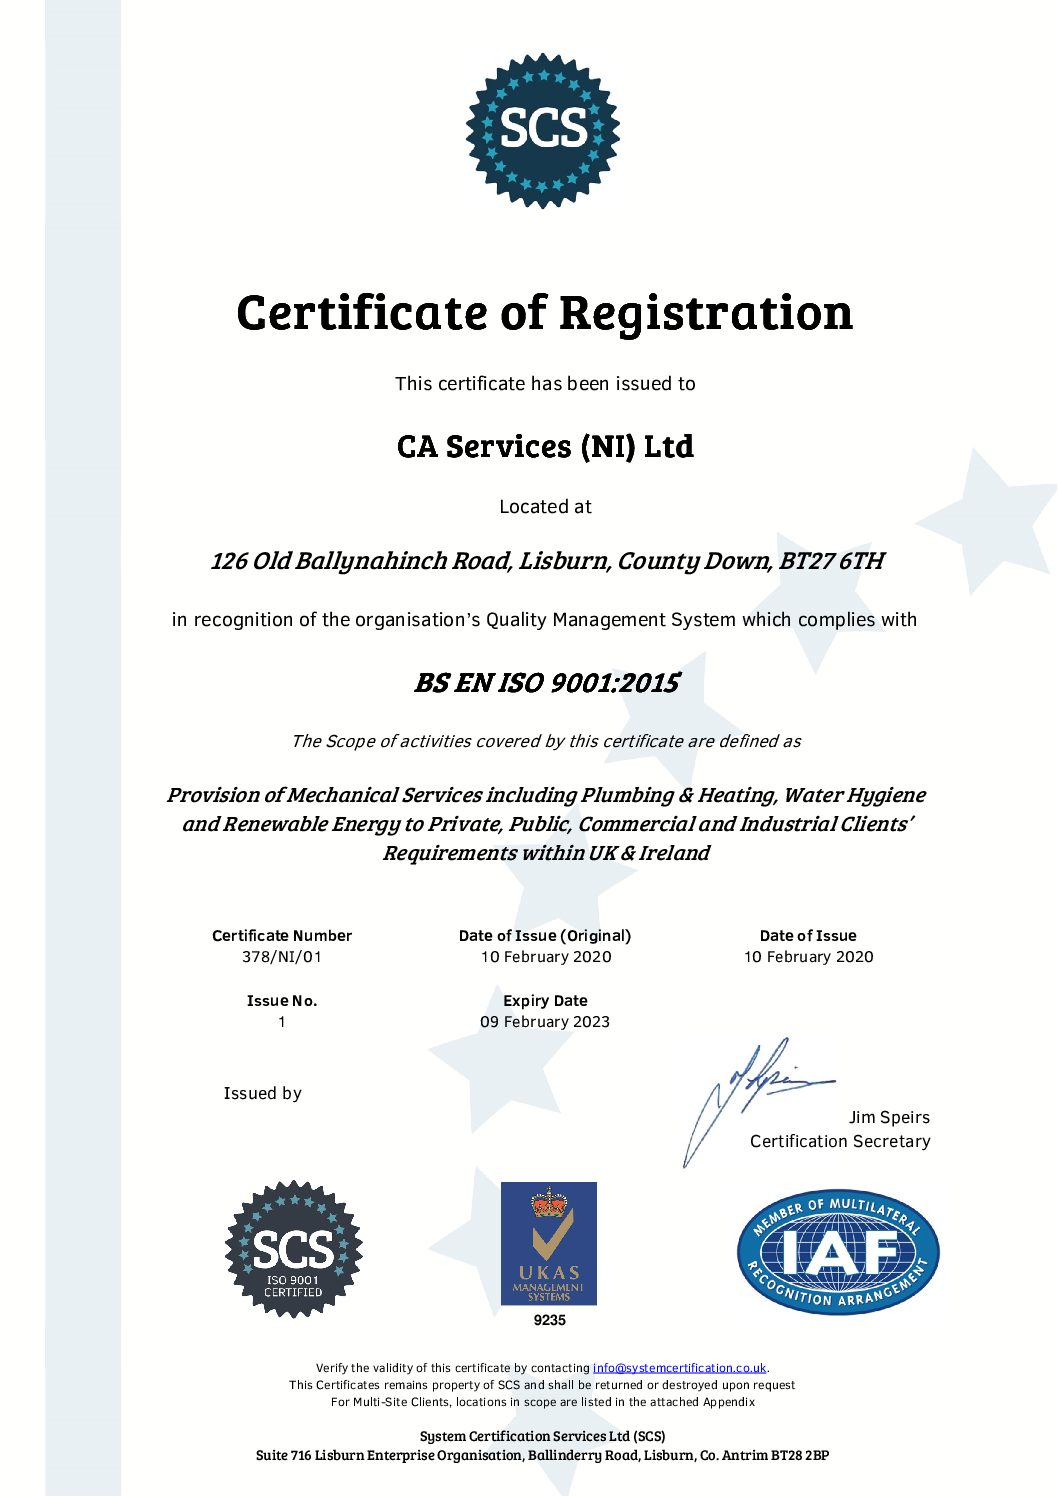 C A Services achieves ISO 9001:2015 certification Quality Management System